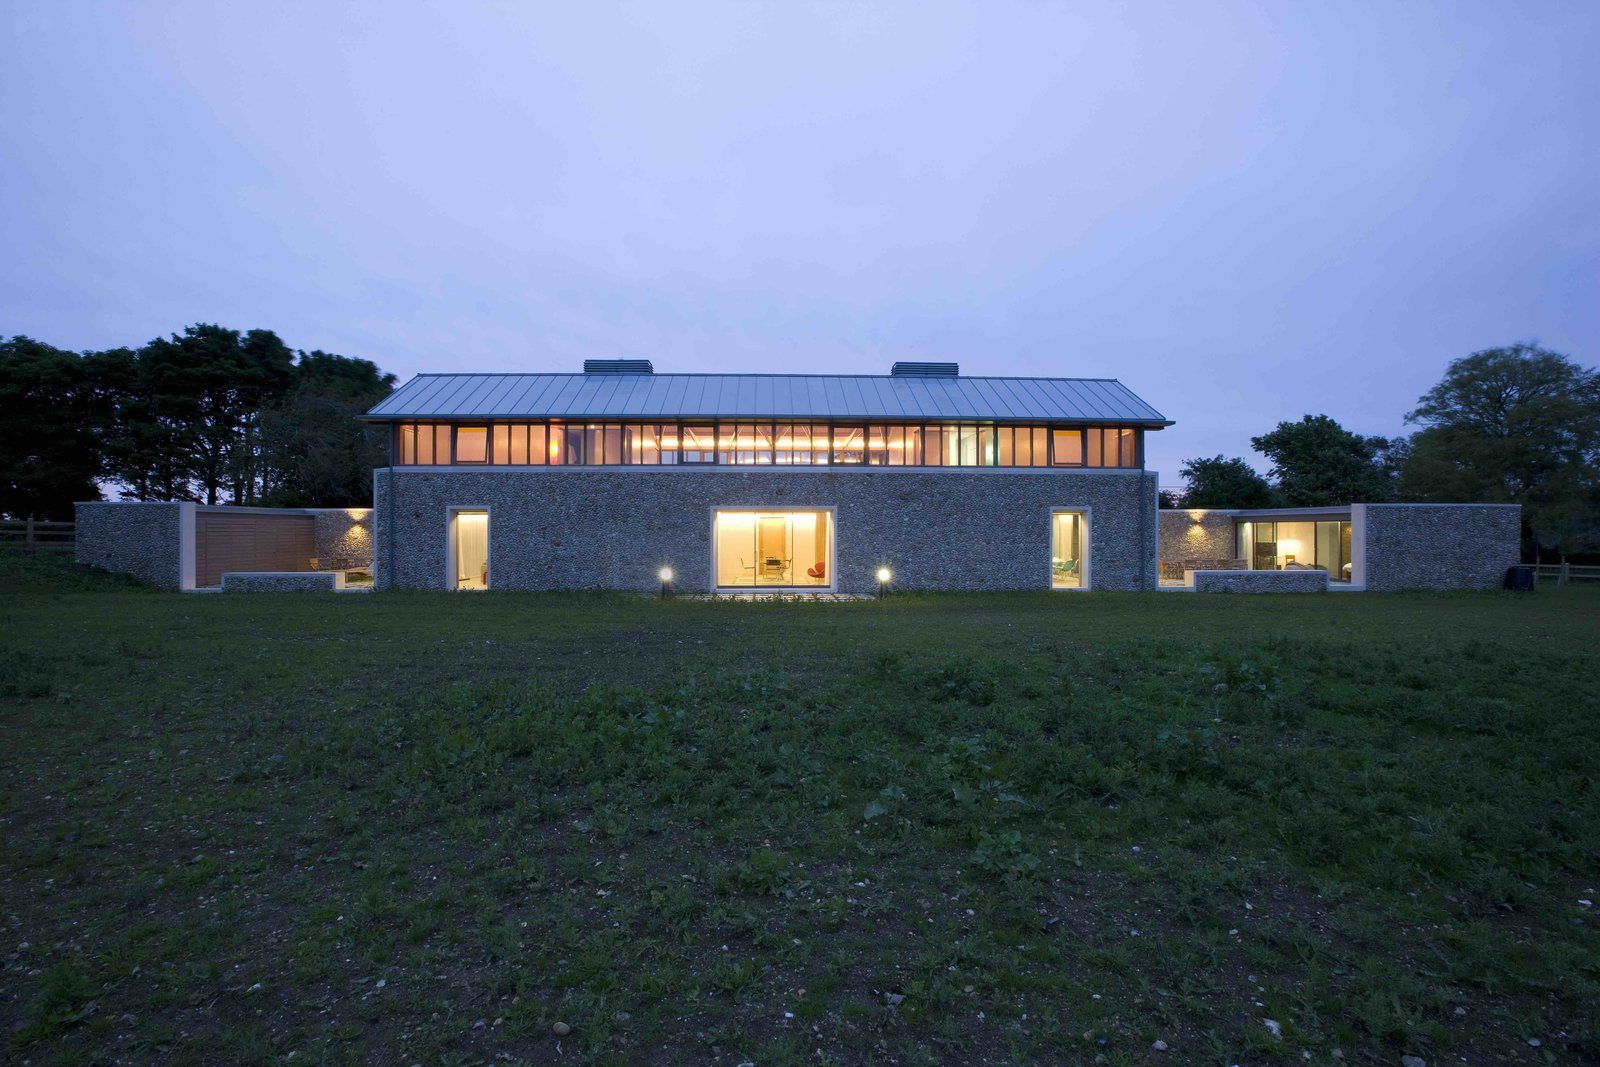 A home that feels like a refuge while still connecting its user to their surrounding environment, The Long House on the North coast of Norfolk has flint walls that pay homage to the barns and ancient churches in the area. Designed by British masters Sir Michael and Lady Patty Hopkins, this house melds elements from medieval architecture with distinctly modernist features.